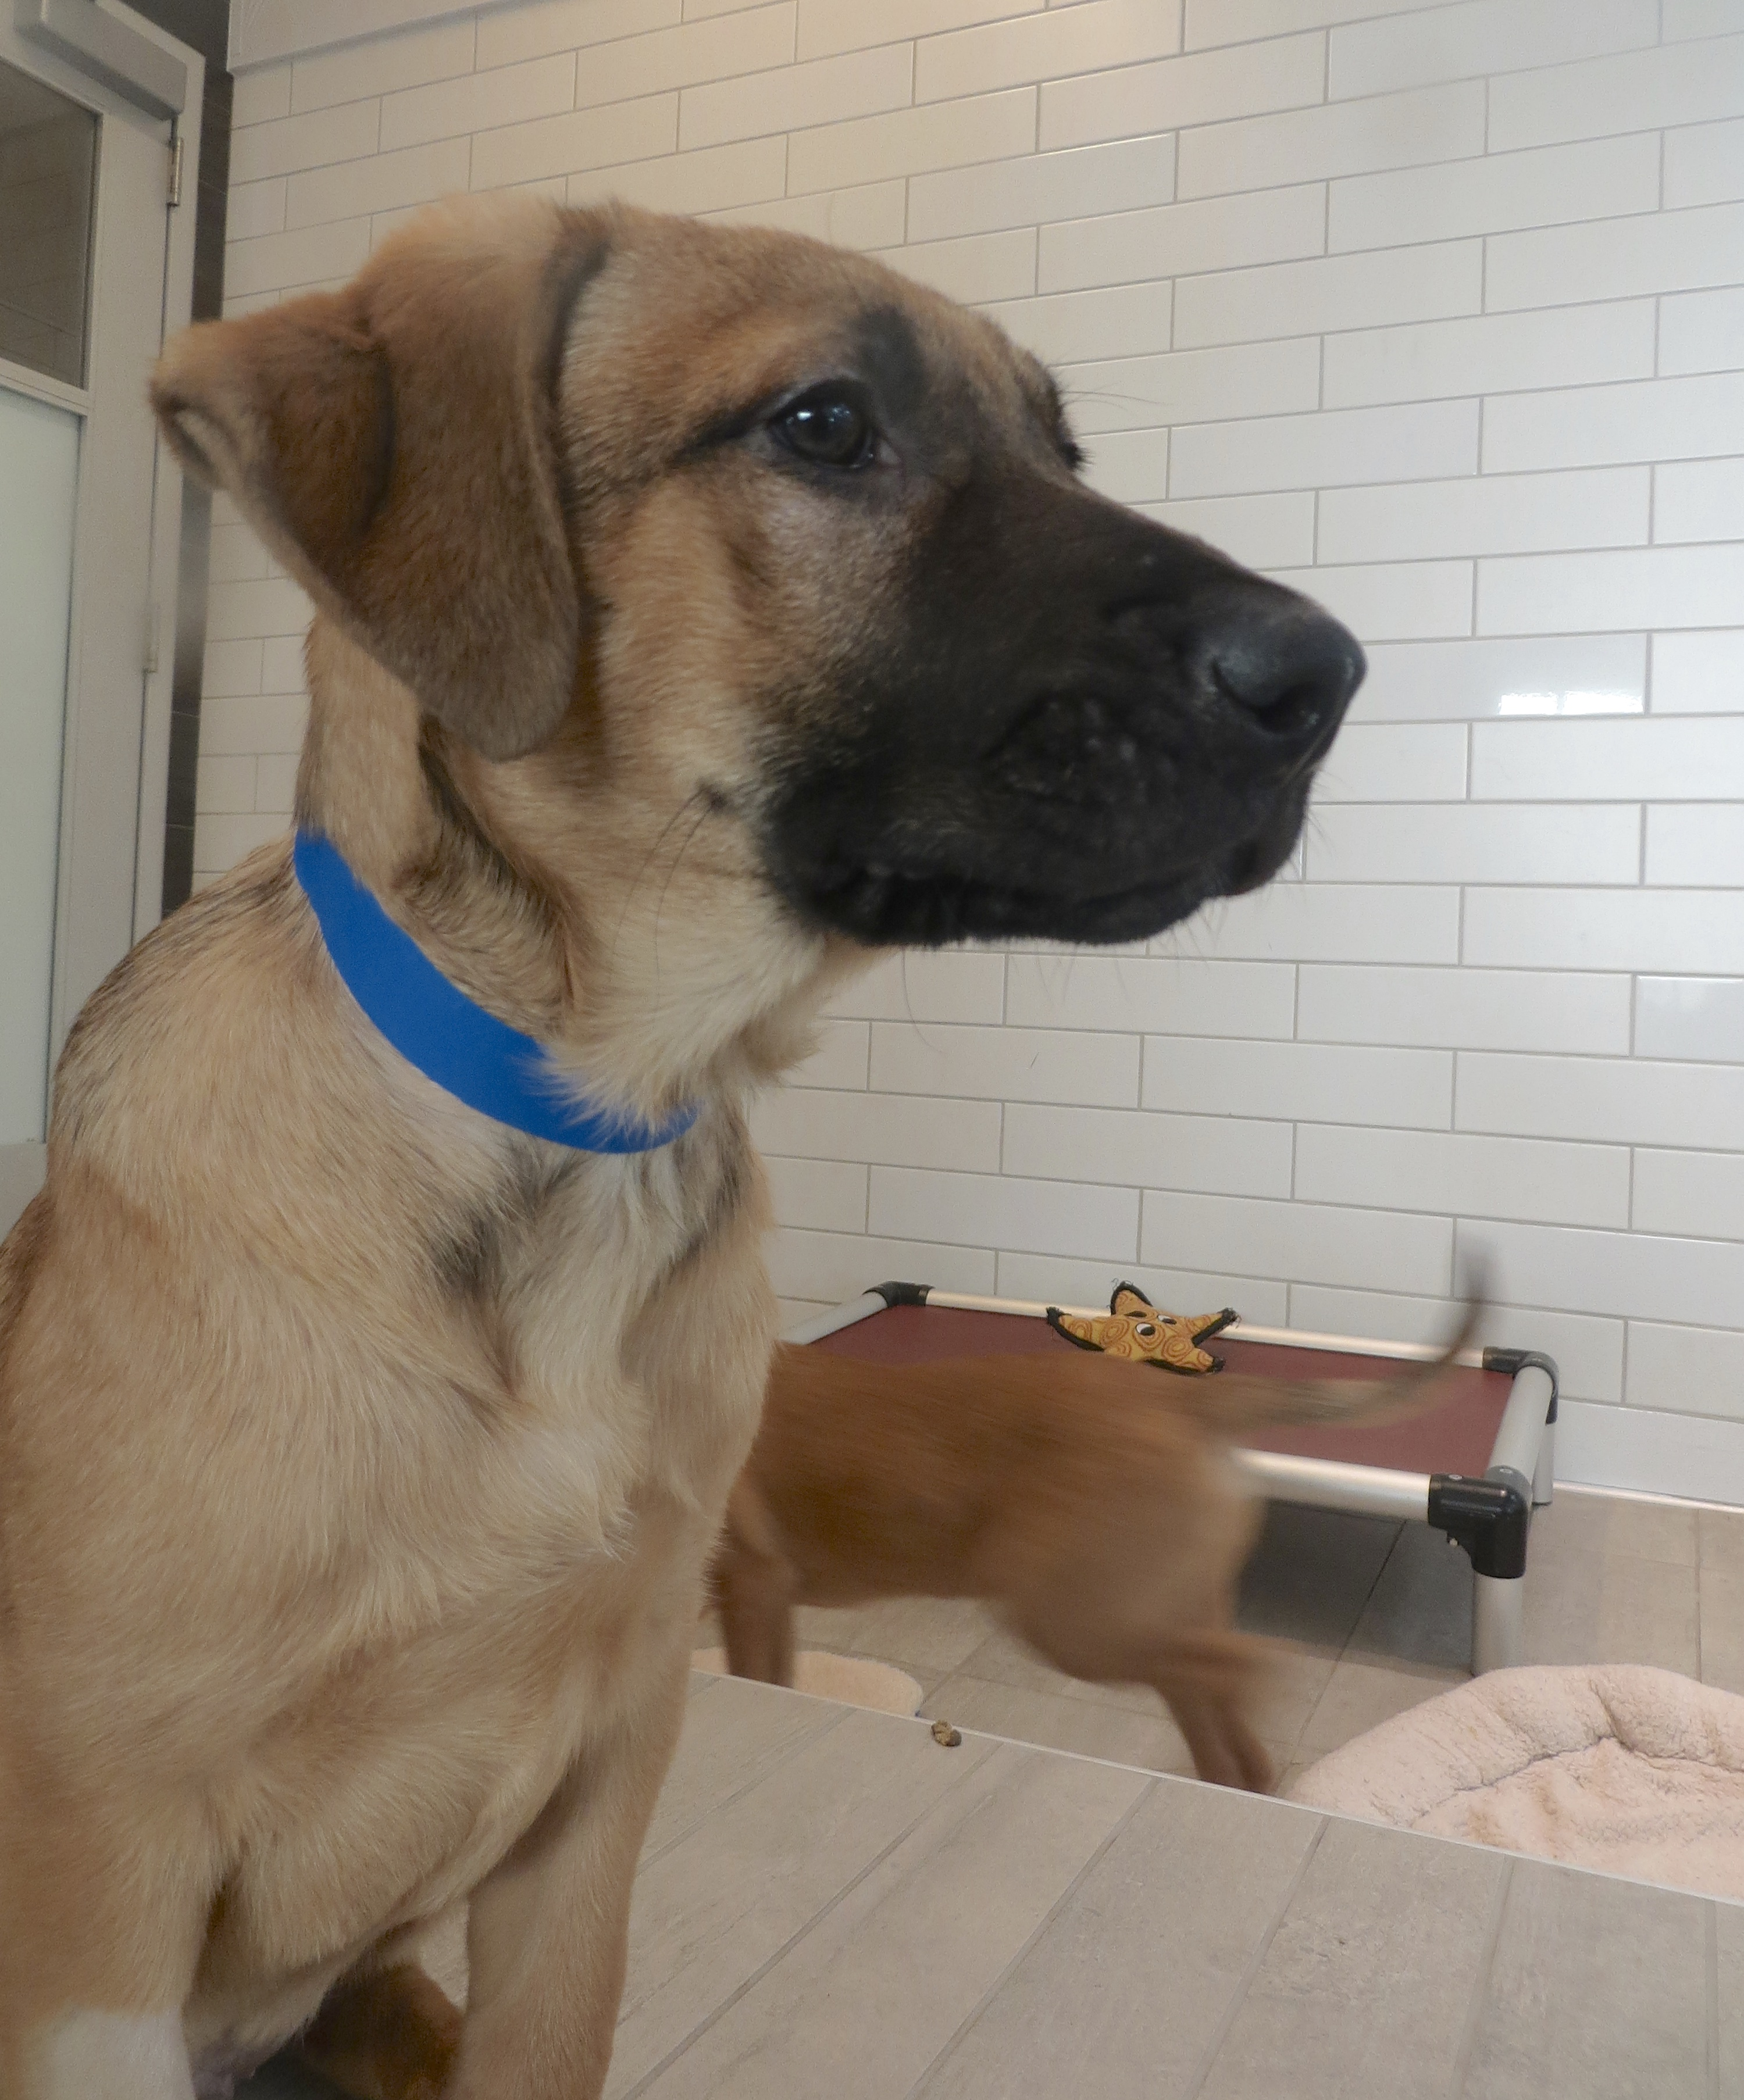 Boxer Mix Puppy Staring Off Into Space